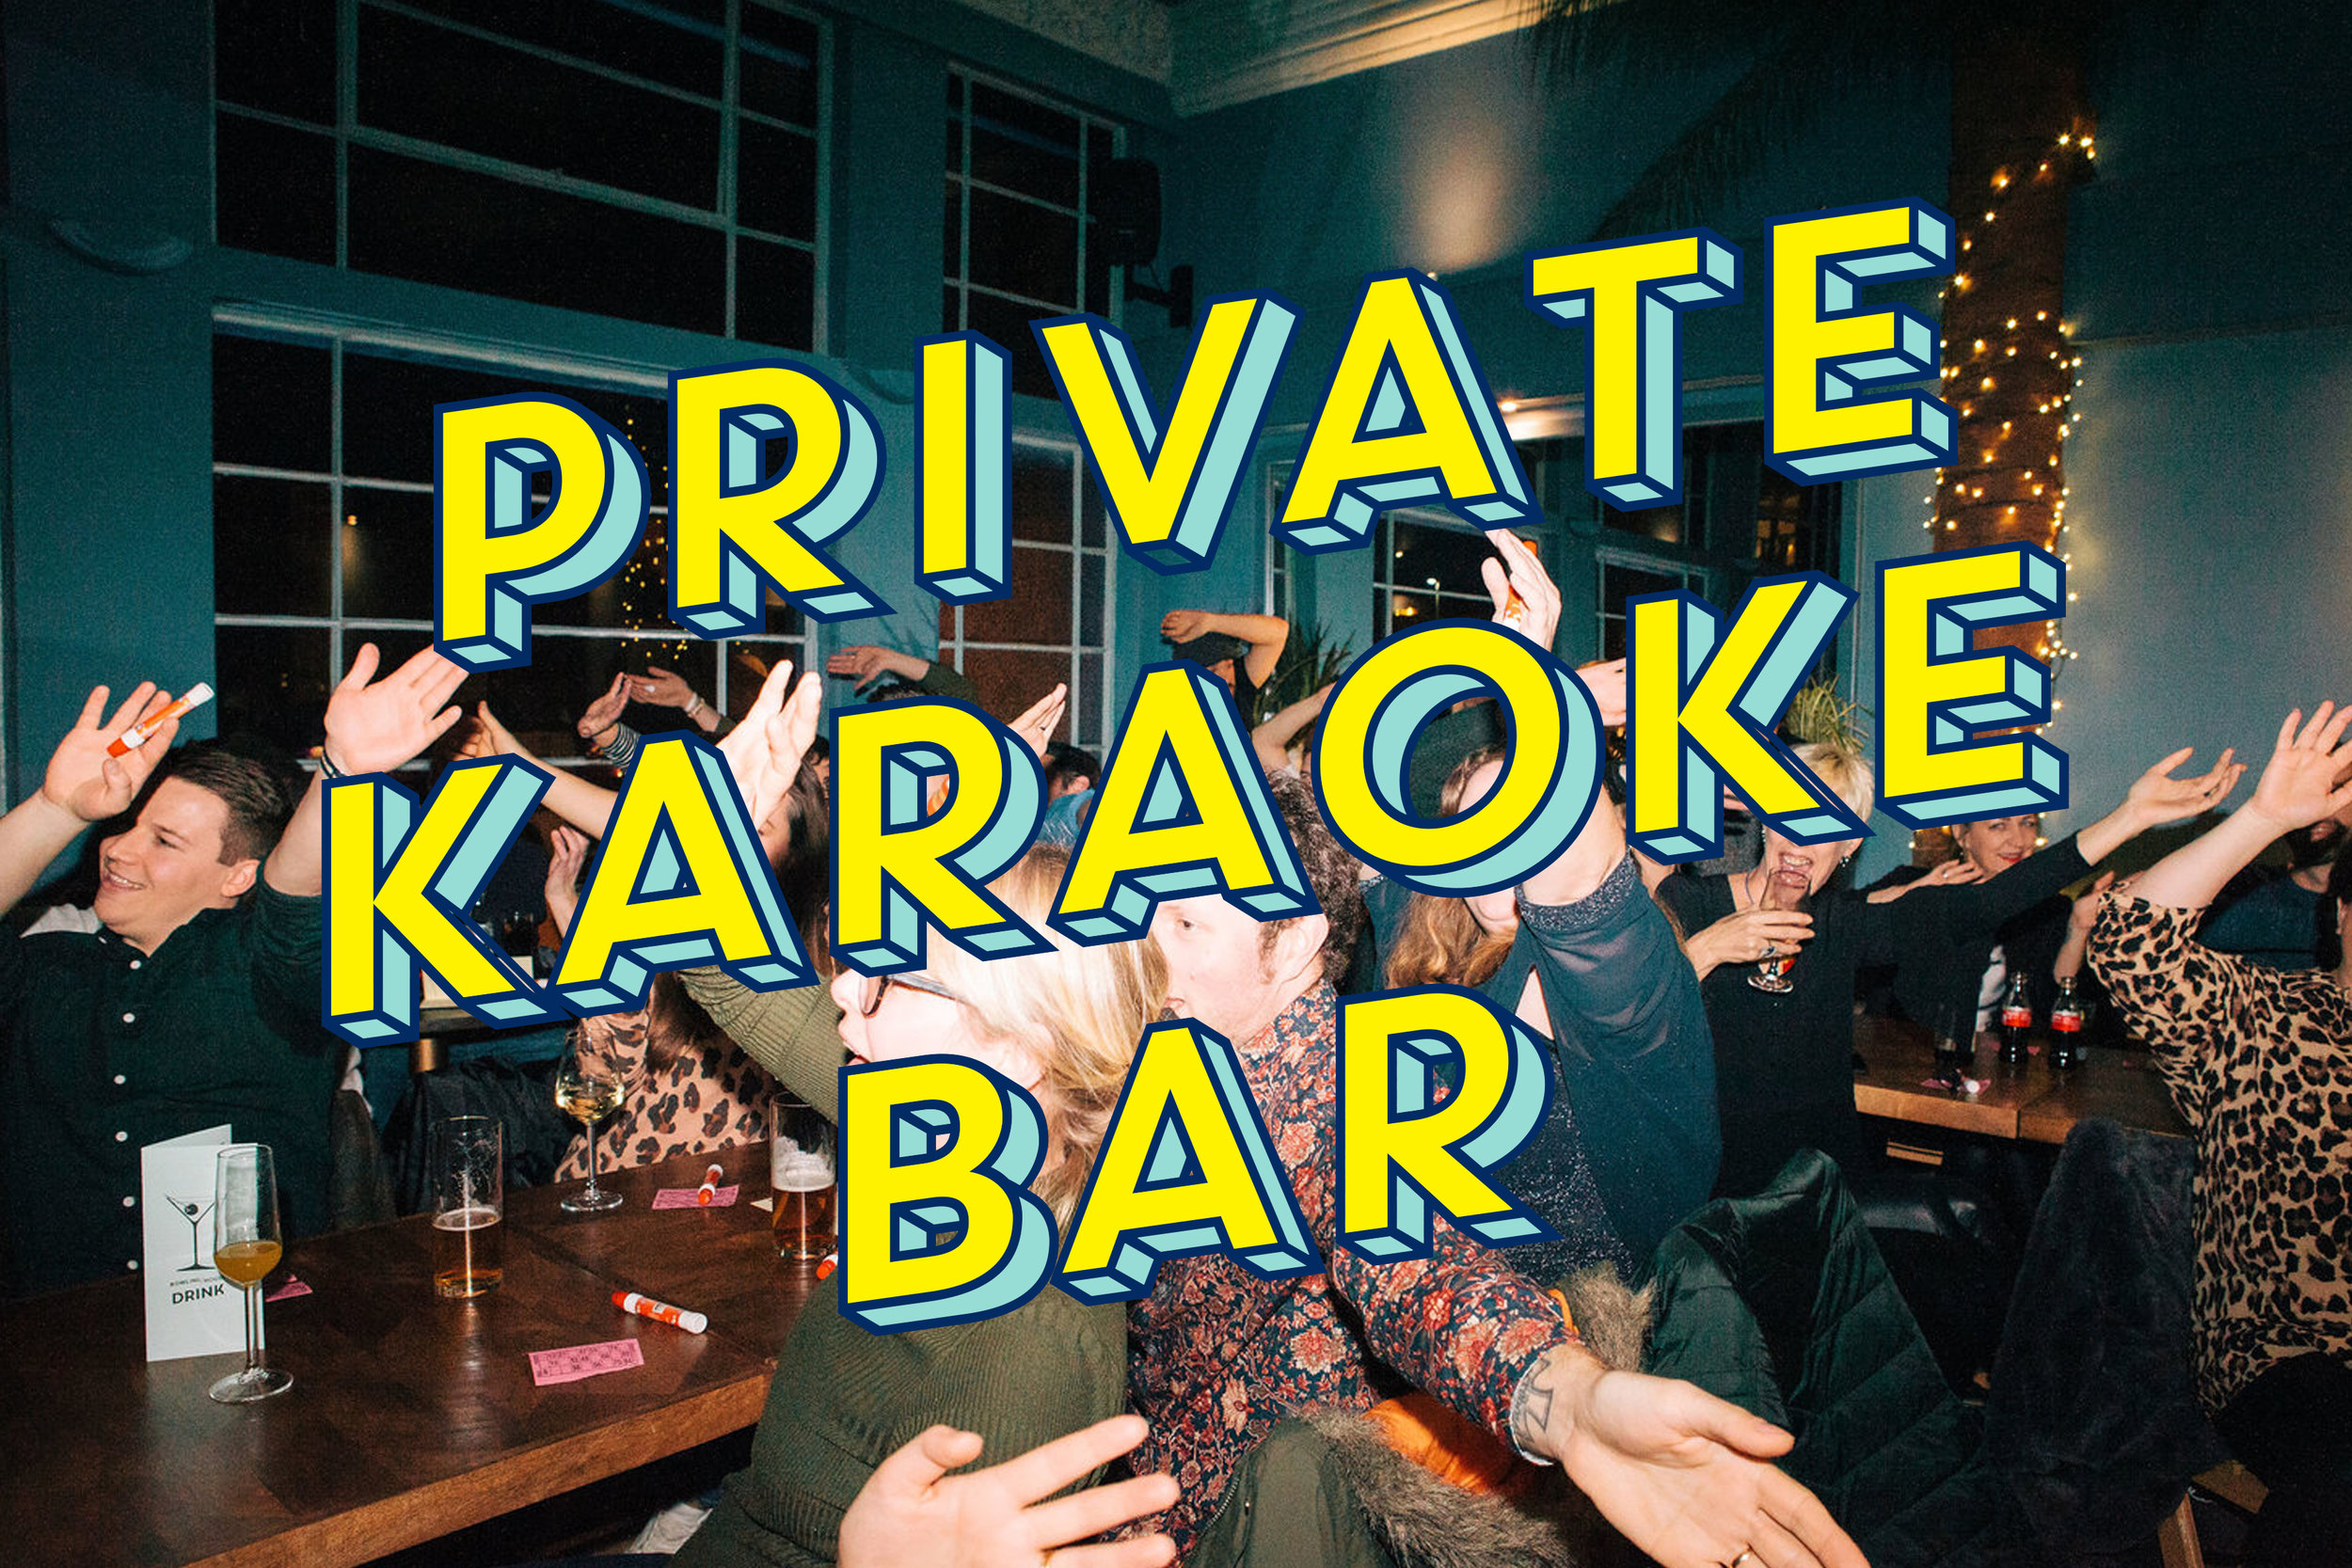 Karaoke Bar   Hire your own private Karaoke Bar with a personal bartender for up to 50 people.  £50 per hour (minimum two hours)    BOOK NOW